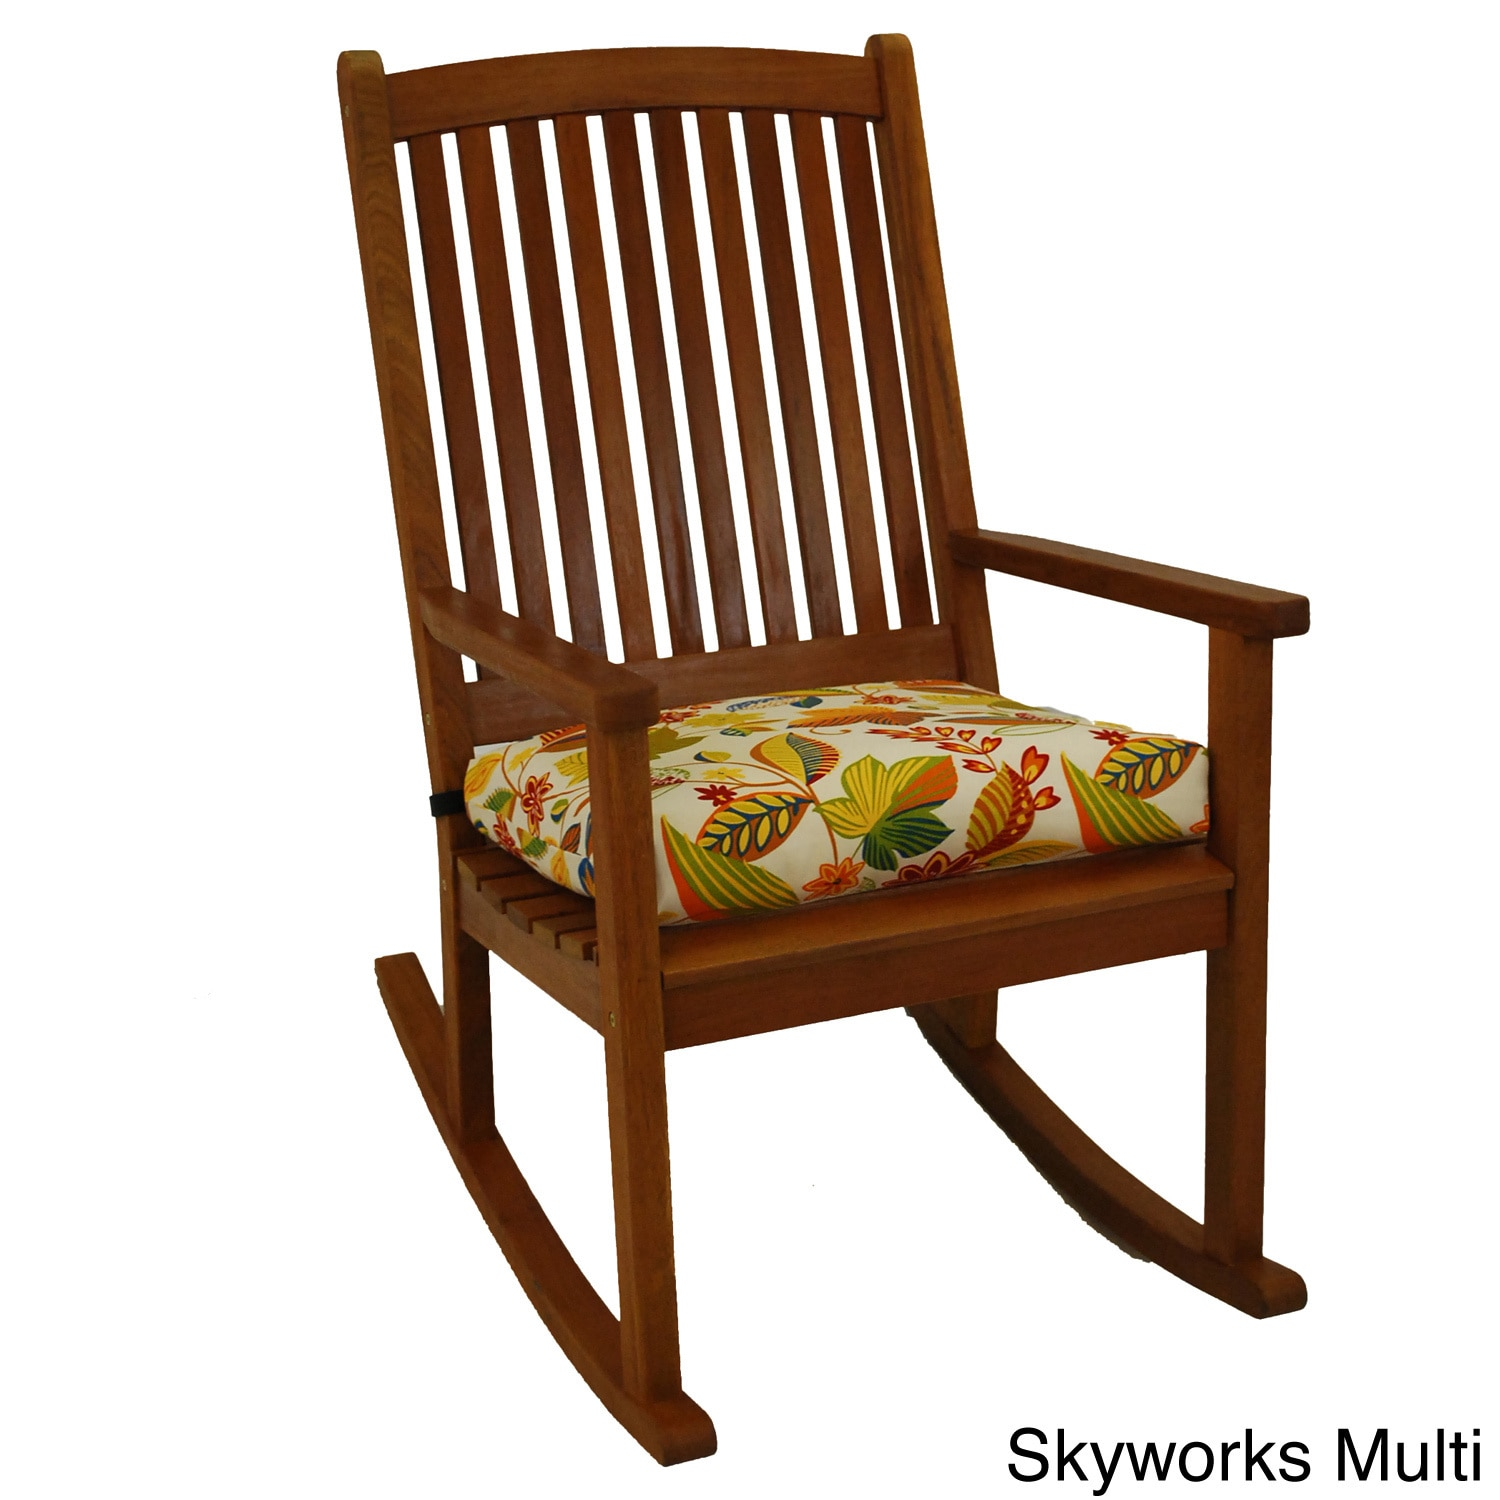 Blazing Needles Patterned All-weather Outdoor Rocker Chair Cushion Skyworks Multi (REO-26)